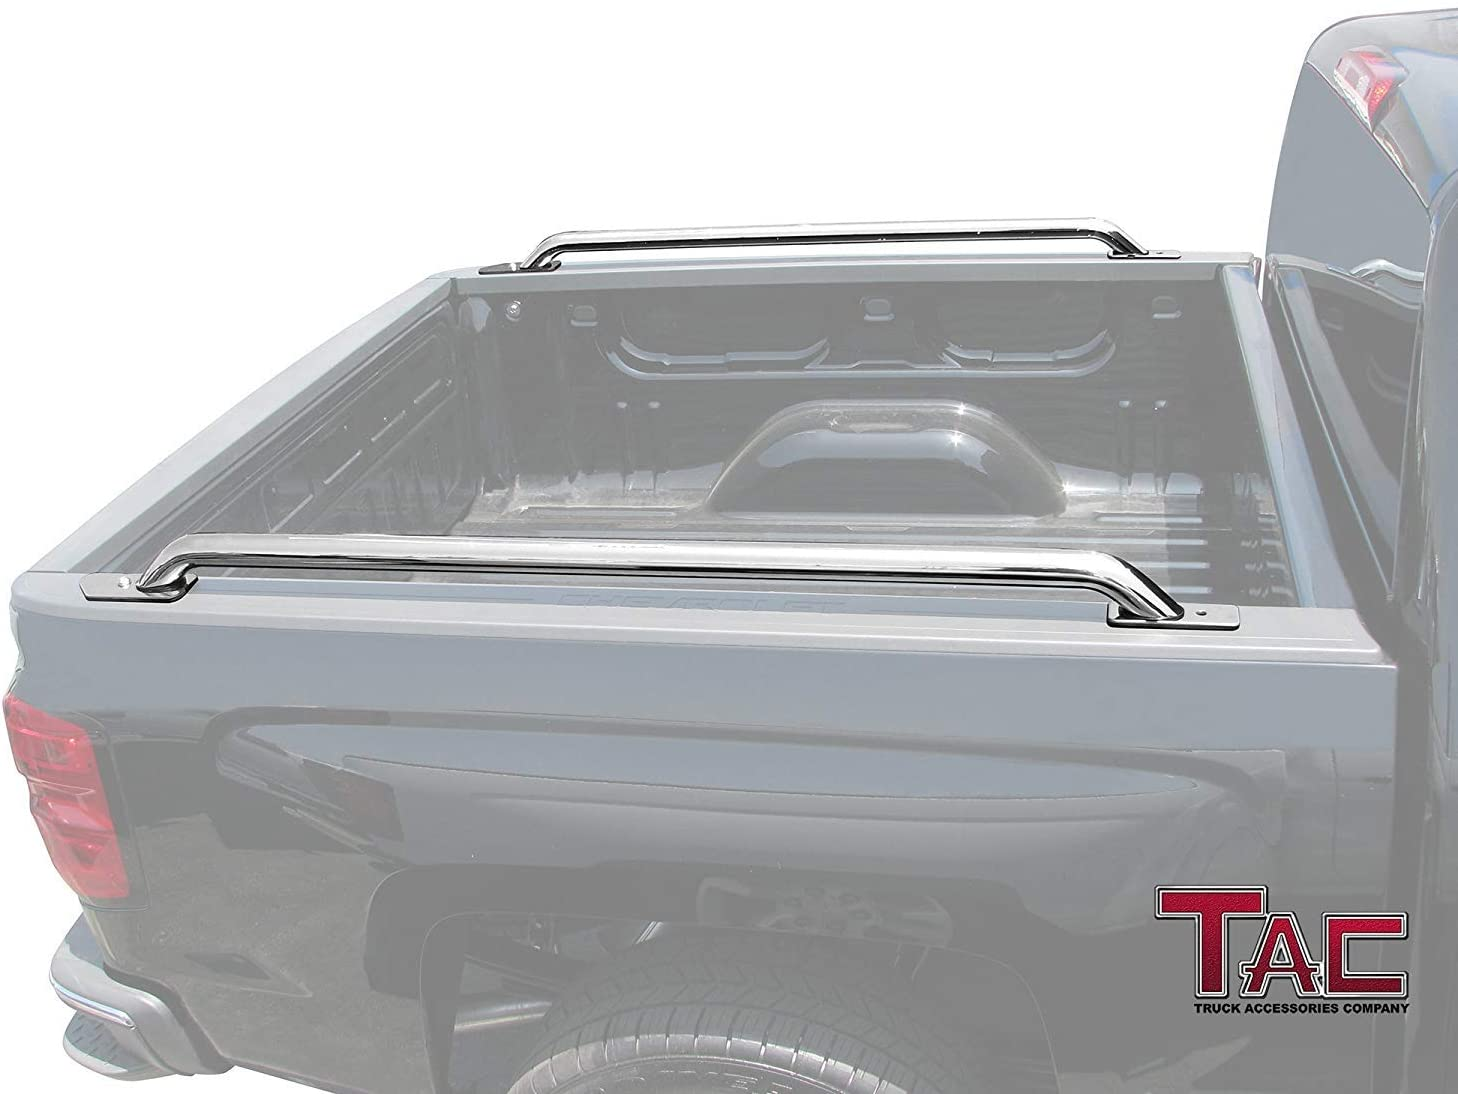 TAC Bed Rails Fit 2014-2019 Chevy Silverado 1500 2 Pieces Bed Rails GMC Sierra 1500 5.5ft Short Bed T304 Stainless Steel truck Side rails Off Road Automotive Exterior Accessories